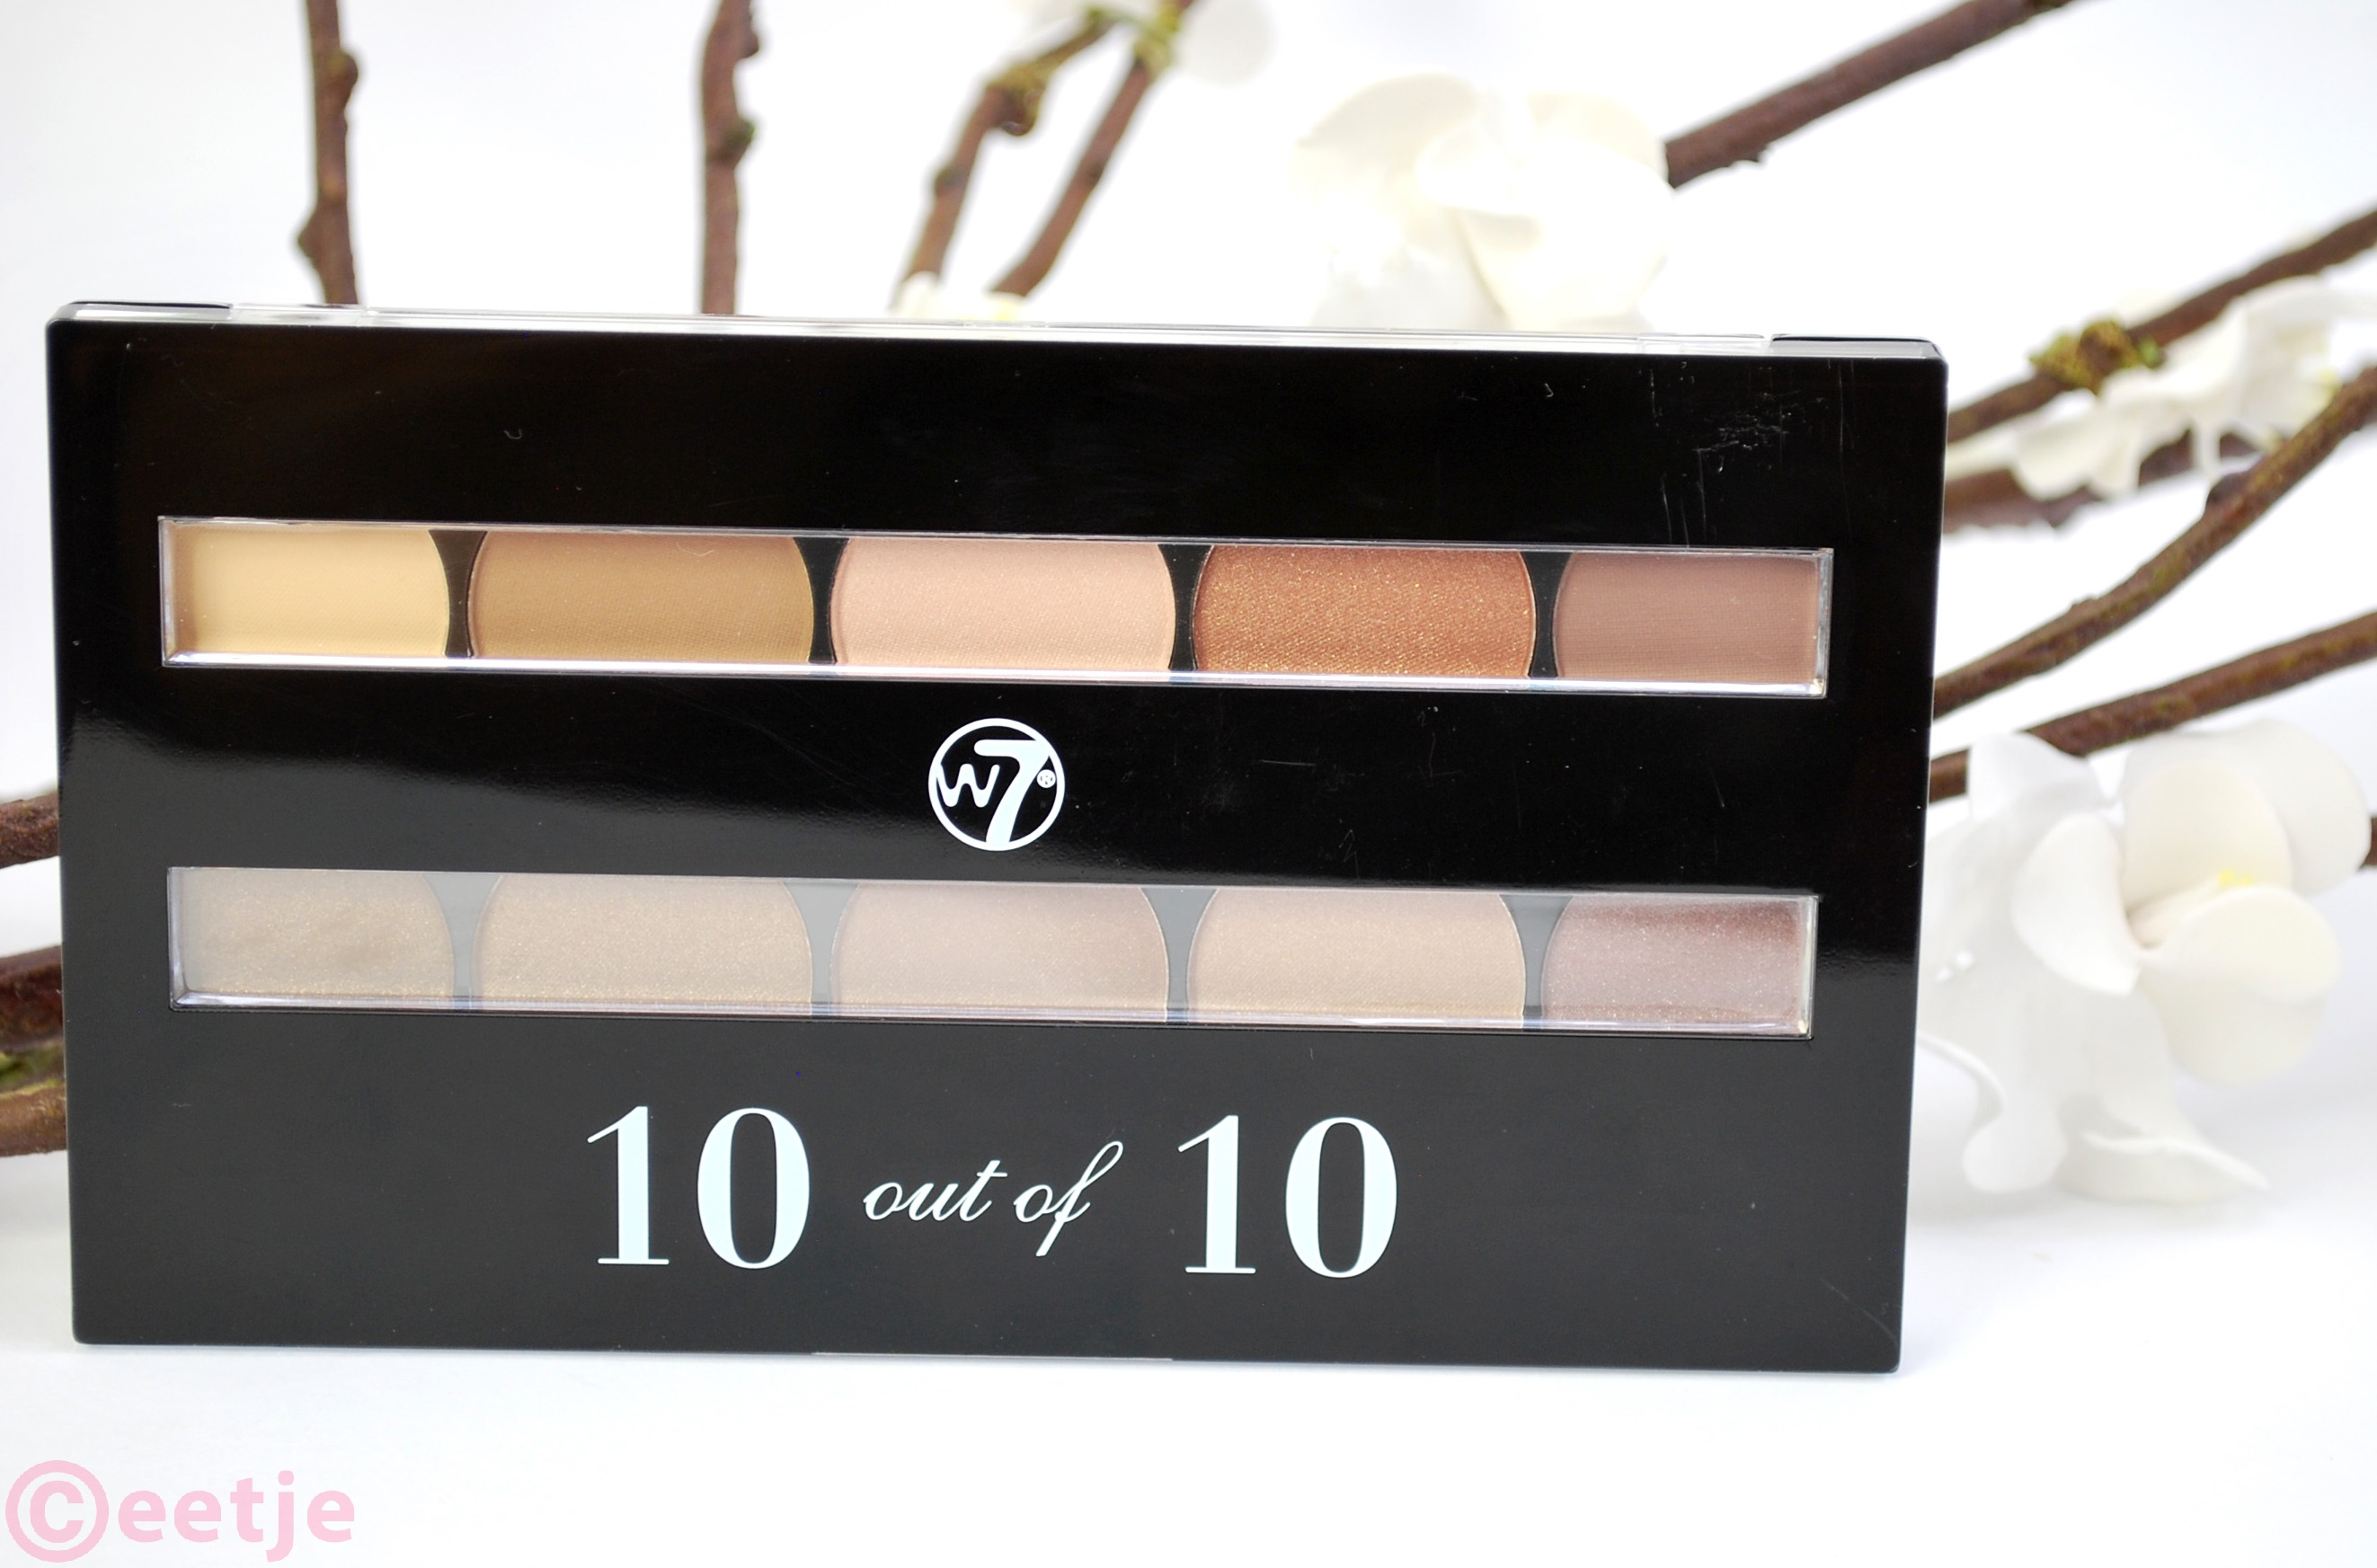 review W7 10 out of 10 eyeshadow palette